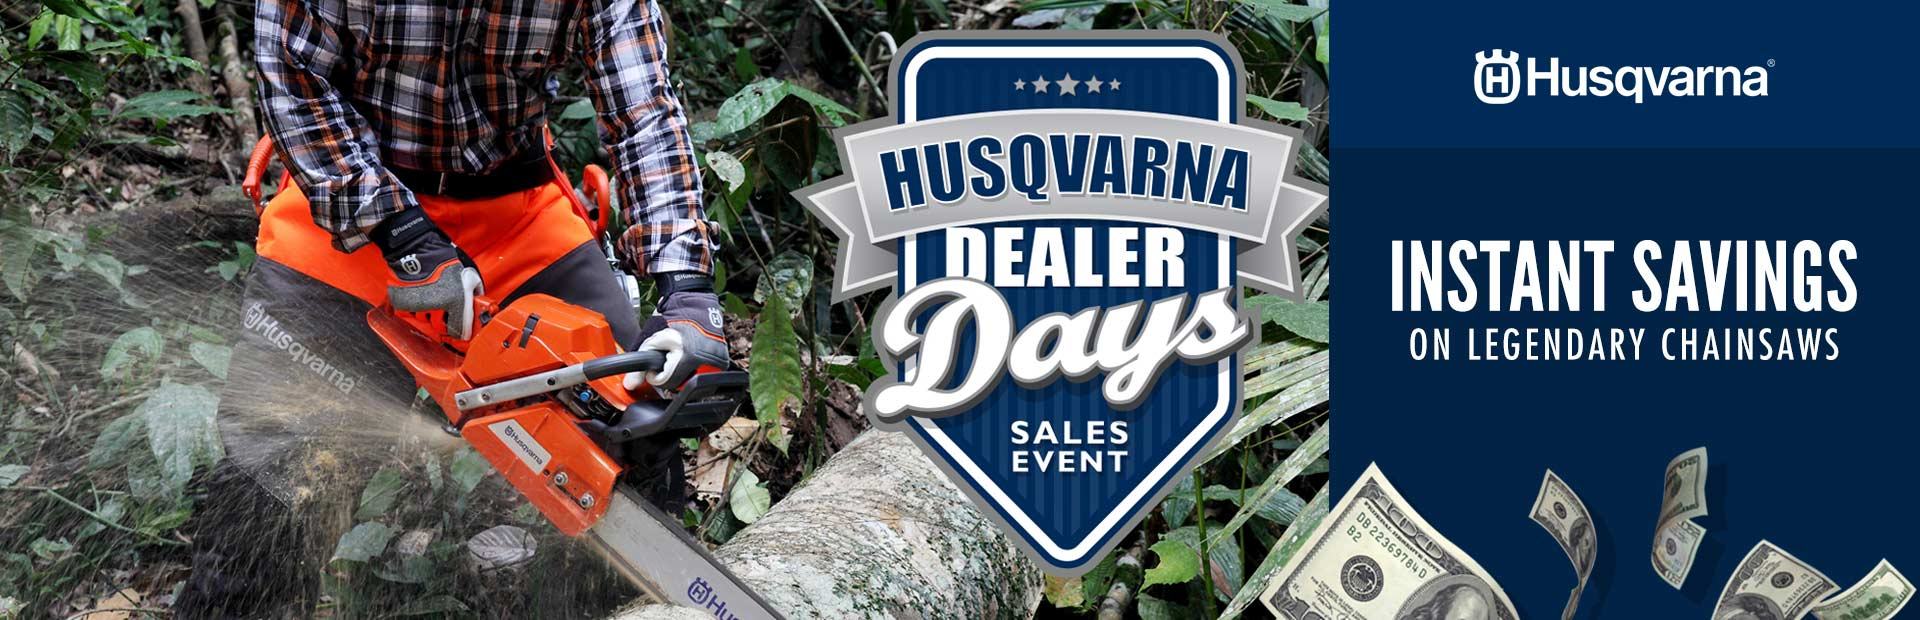 Husqvarna: Instant Savings on Legendary Chainsaws